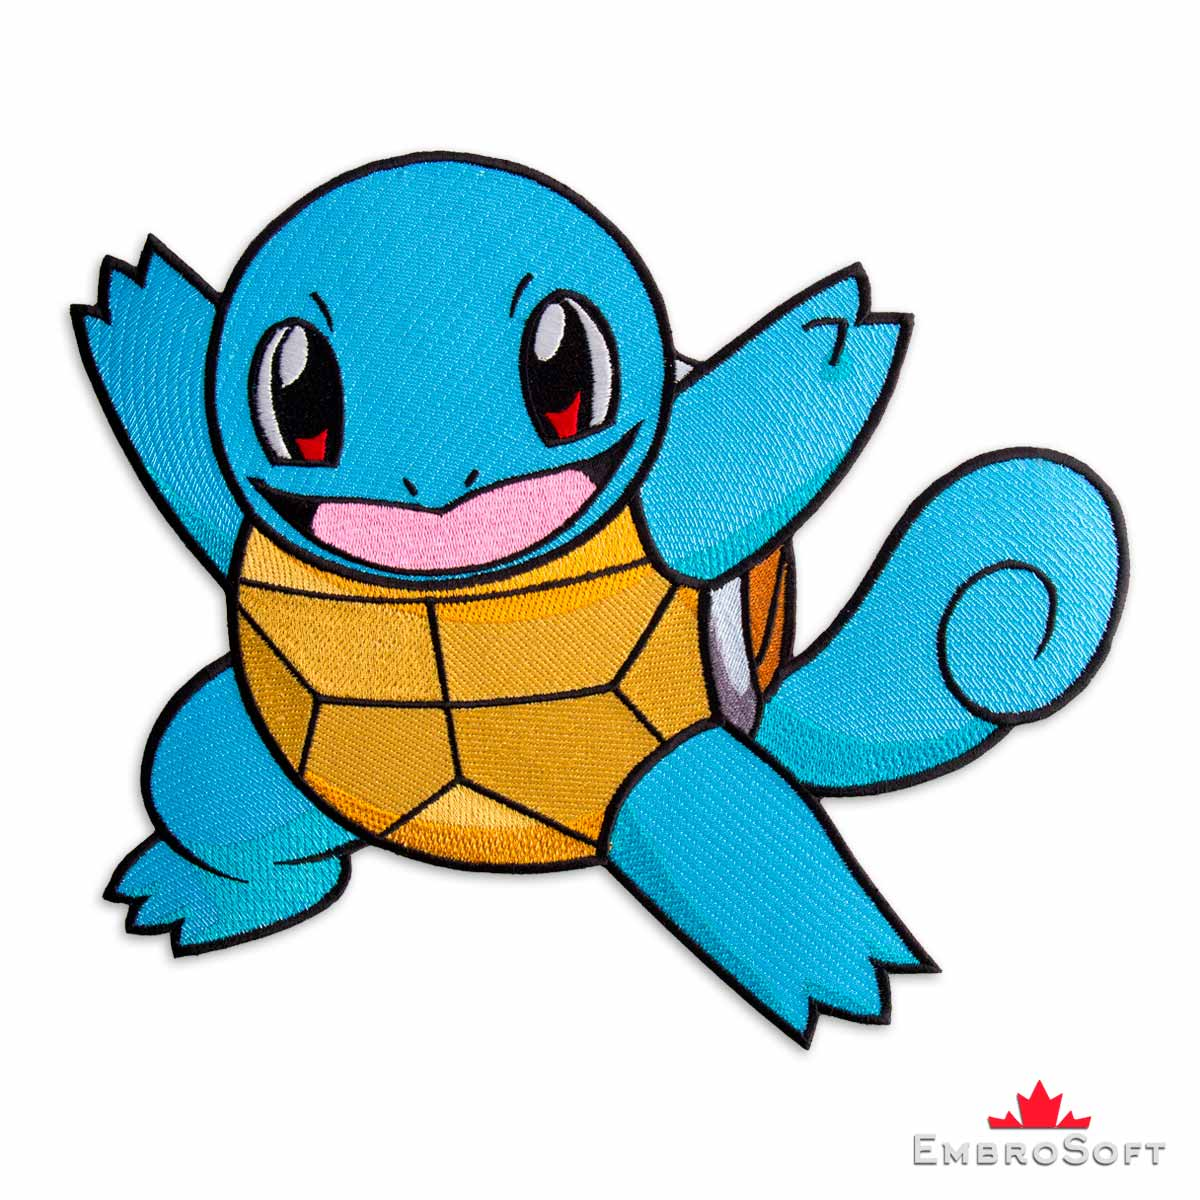 Squirtle Pokemon Embroidered Patch Embrosoft